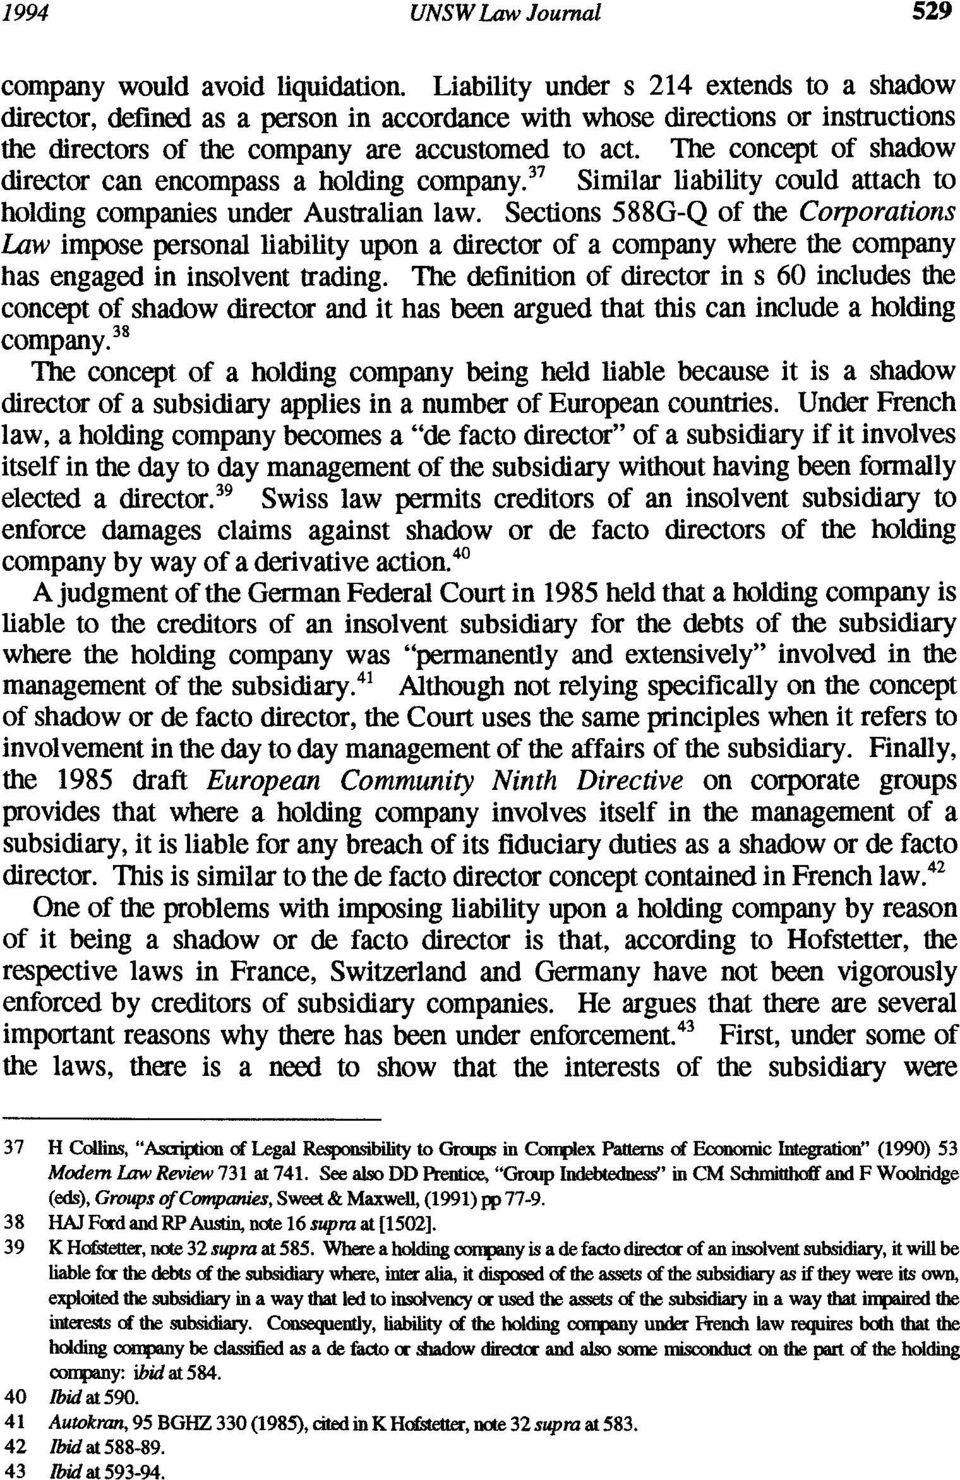 The concept of shadow director can encompass a holding company.37 Similar liability could attach to holding companies under Australian law.